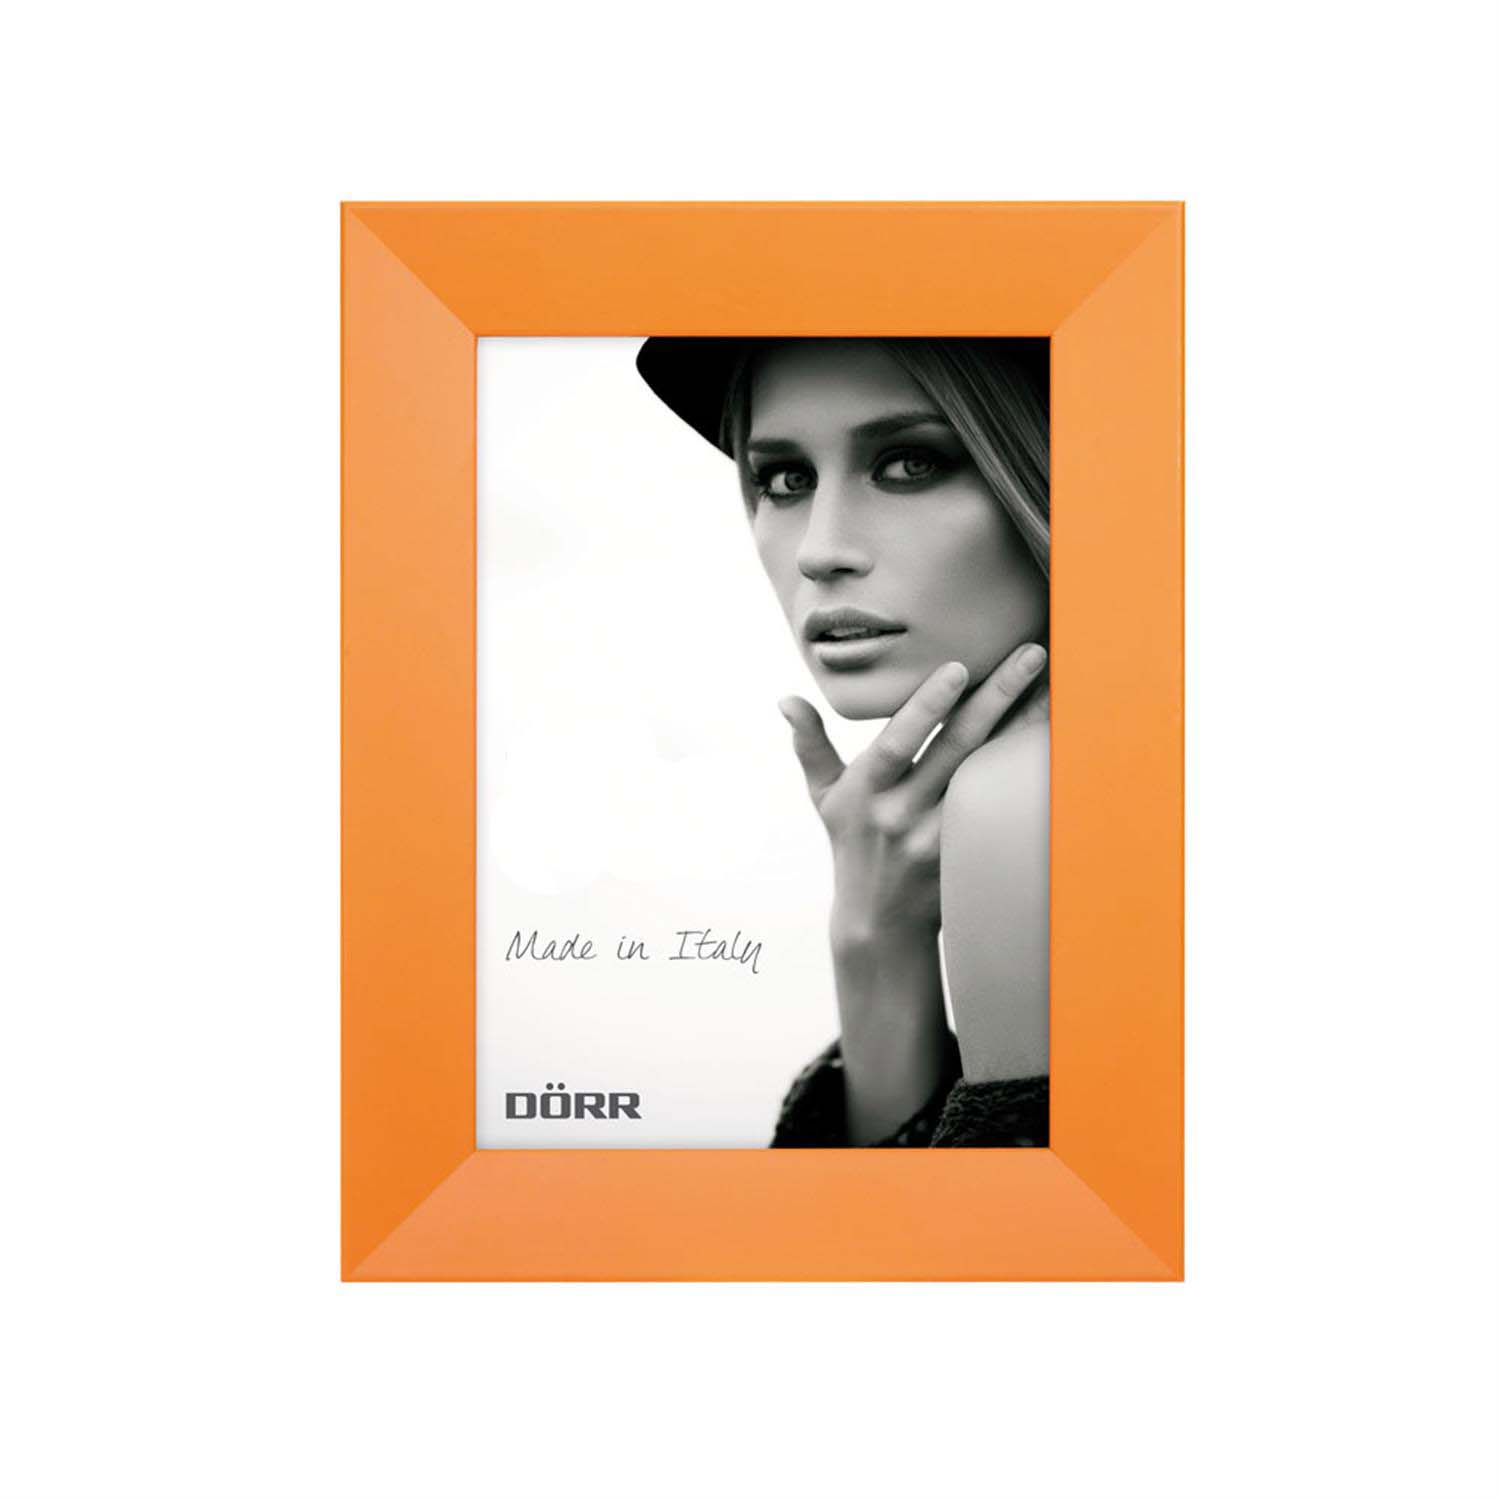 Dorr Trend Orange 6x4 inches Wood Photo Frame